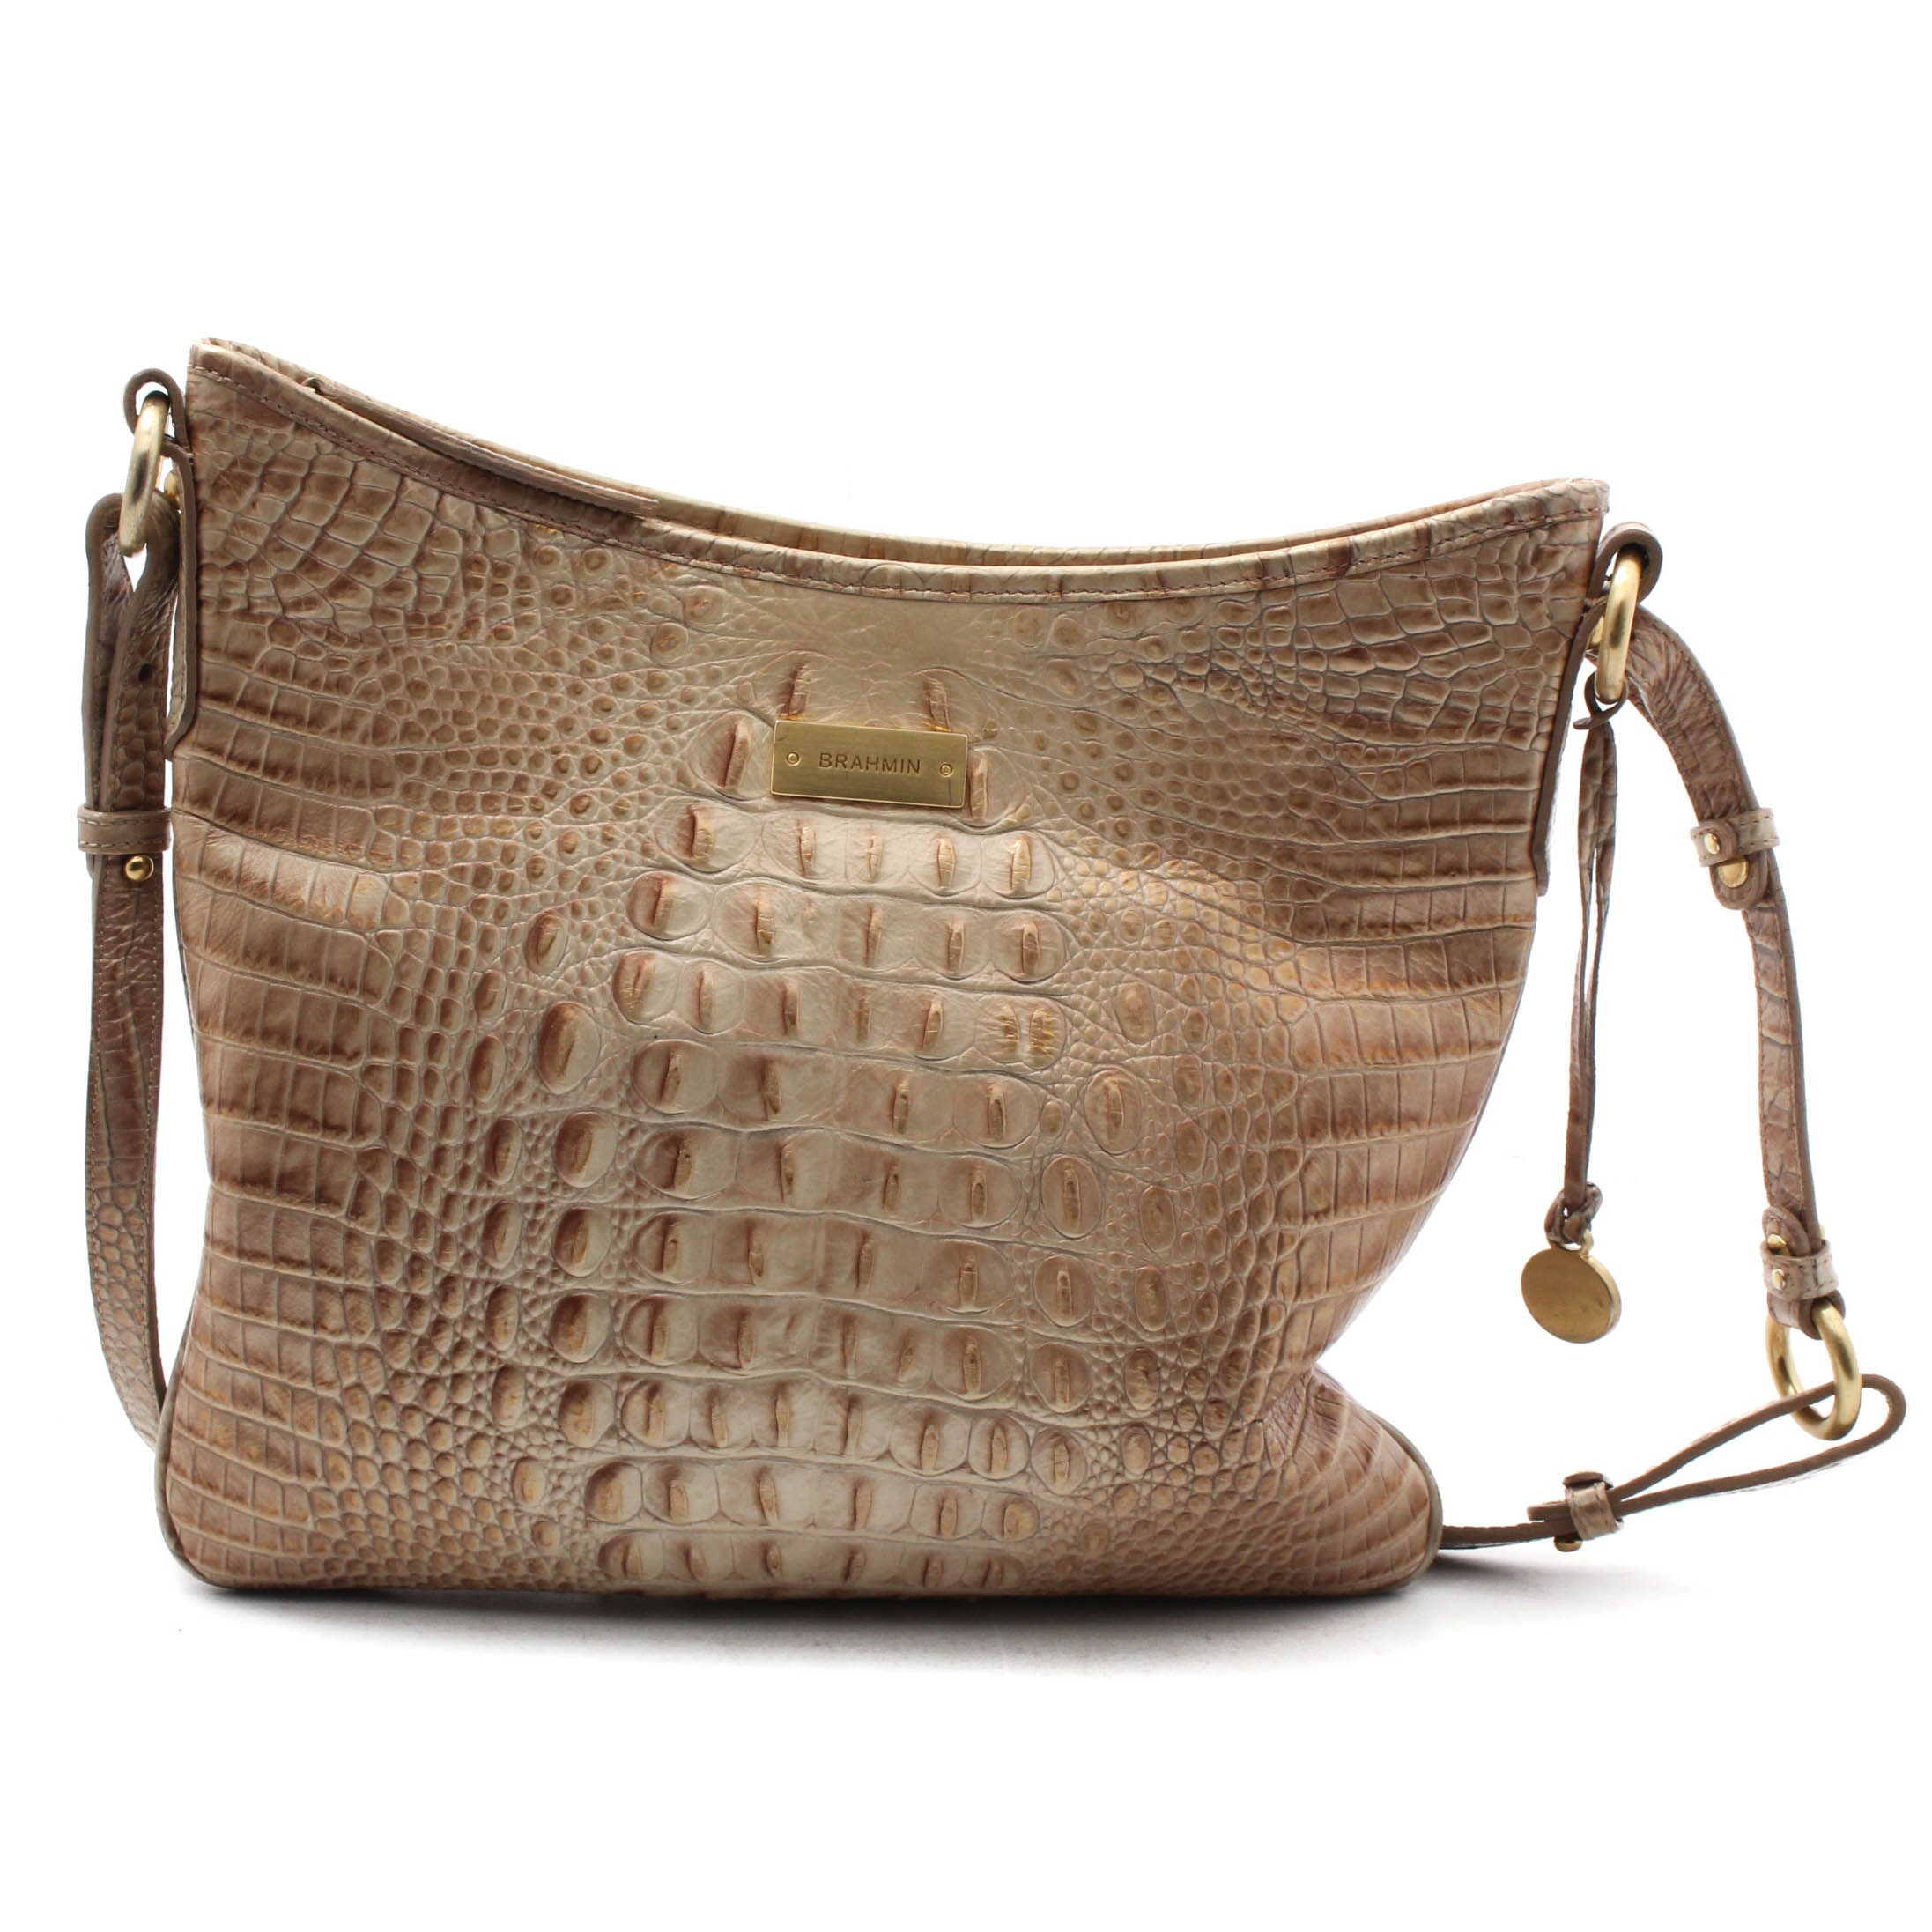 Brahmin Pearlescent Crocodile Embossed Leather Handbag